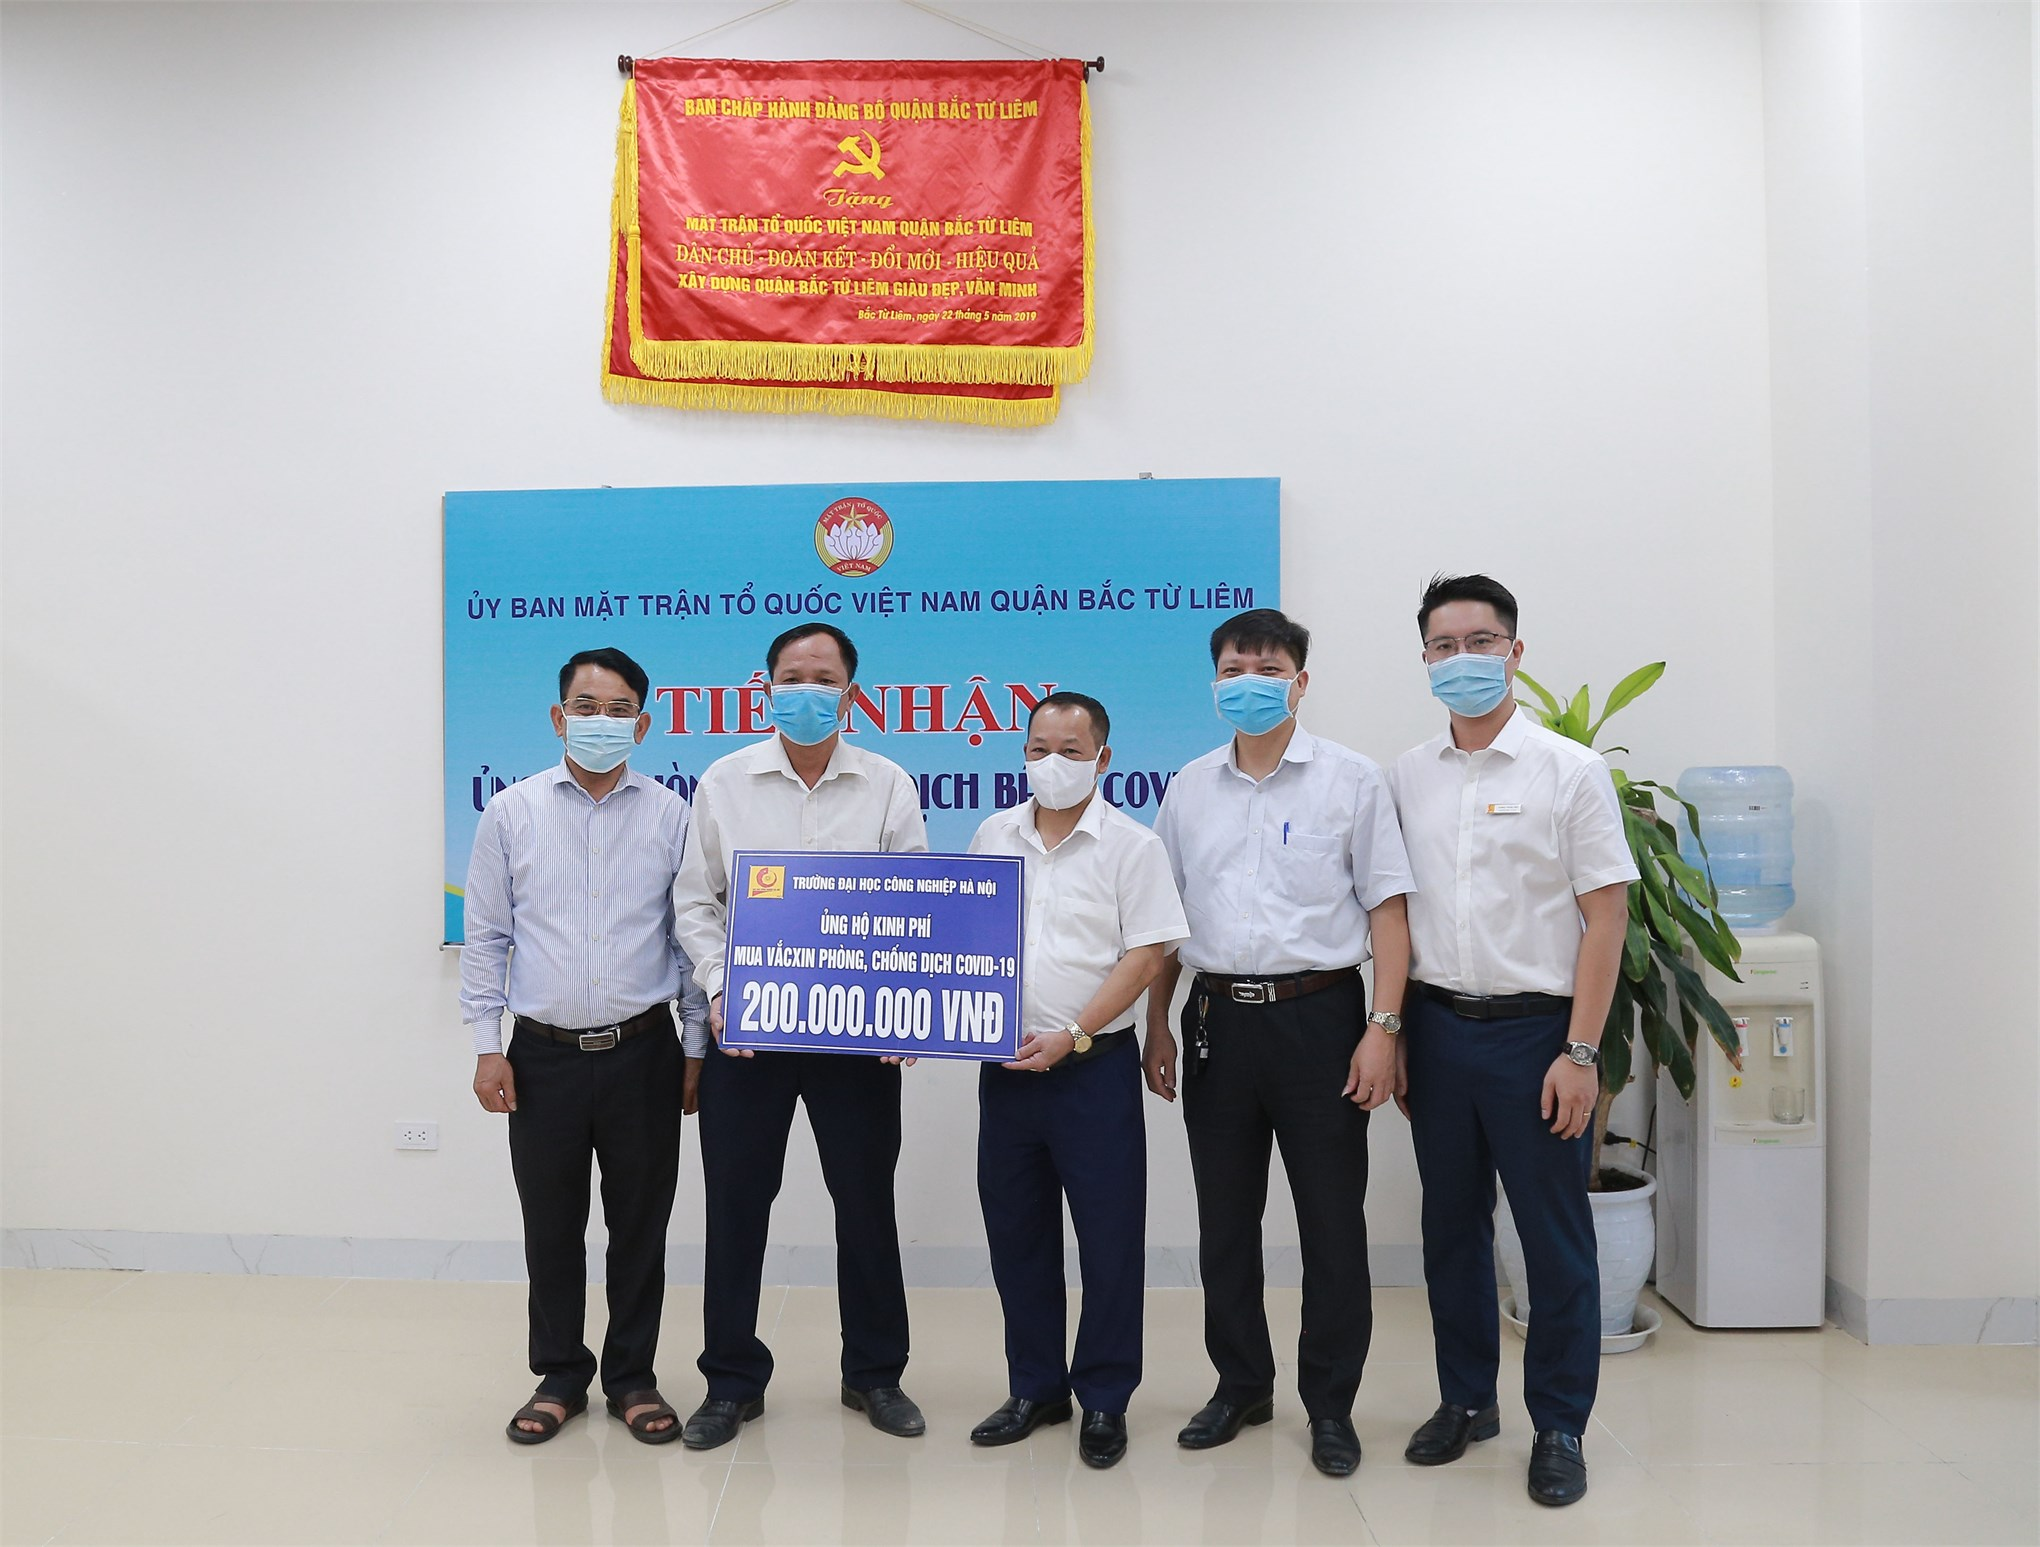 Dr. Nguyen Anh Tuan - Vice-Rector (in the center) symbolically donated to the Vietnam Fatherland Front Committee of Bac Tu Liem district. According to Dr. Nguyen Anh Tuan, in recent days, the situation of the COVID-19 pandemic has been complicated across the country. HaUI wishes to share with the community, to realize the